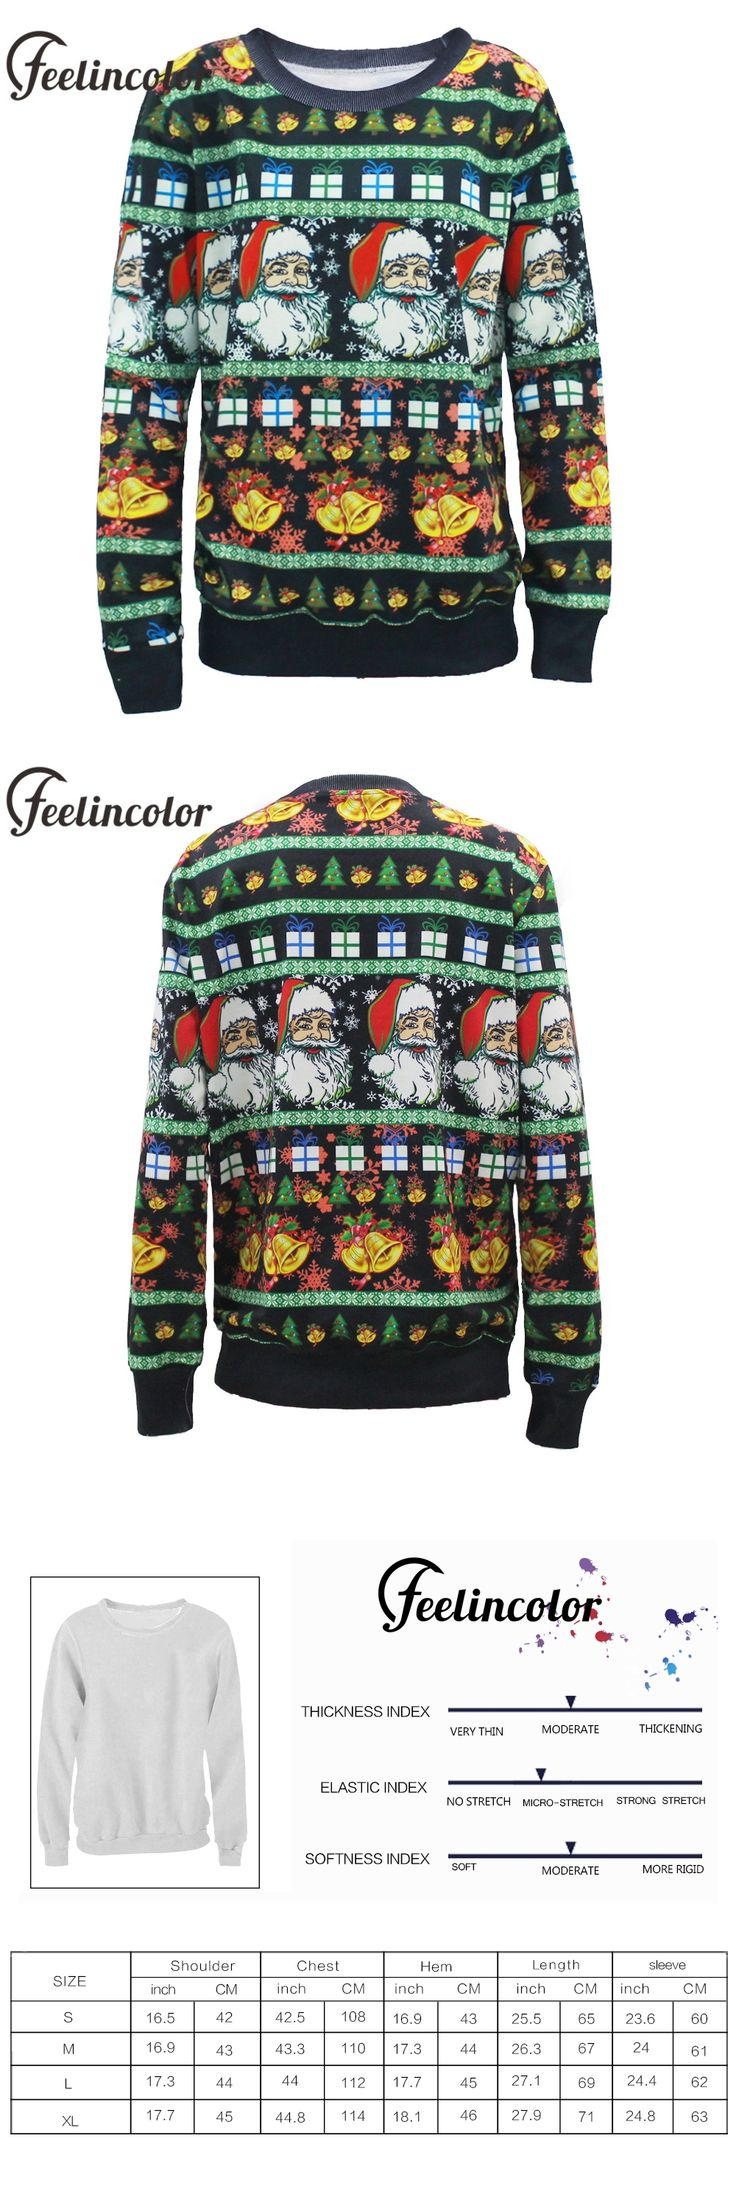 Feelincolor Ugly Christmas Sweater Santa Clus X-mas Unisex Sweaters Fashion Reindeer Black Sweater For Men Women Pullovers